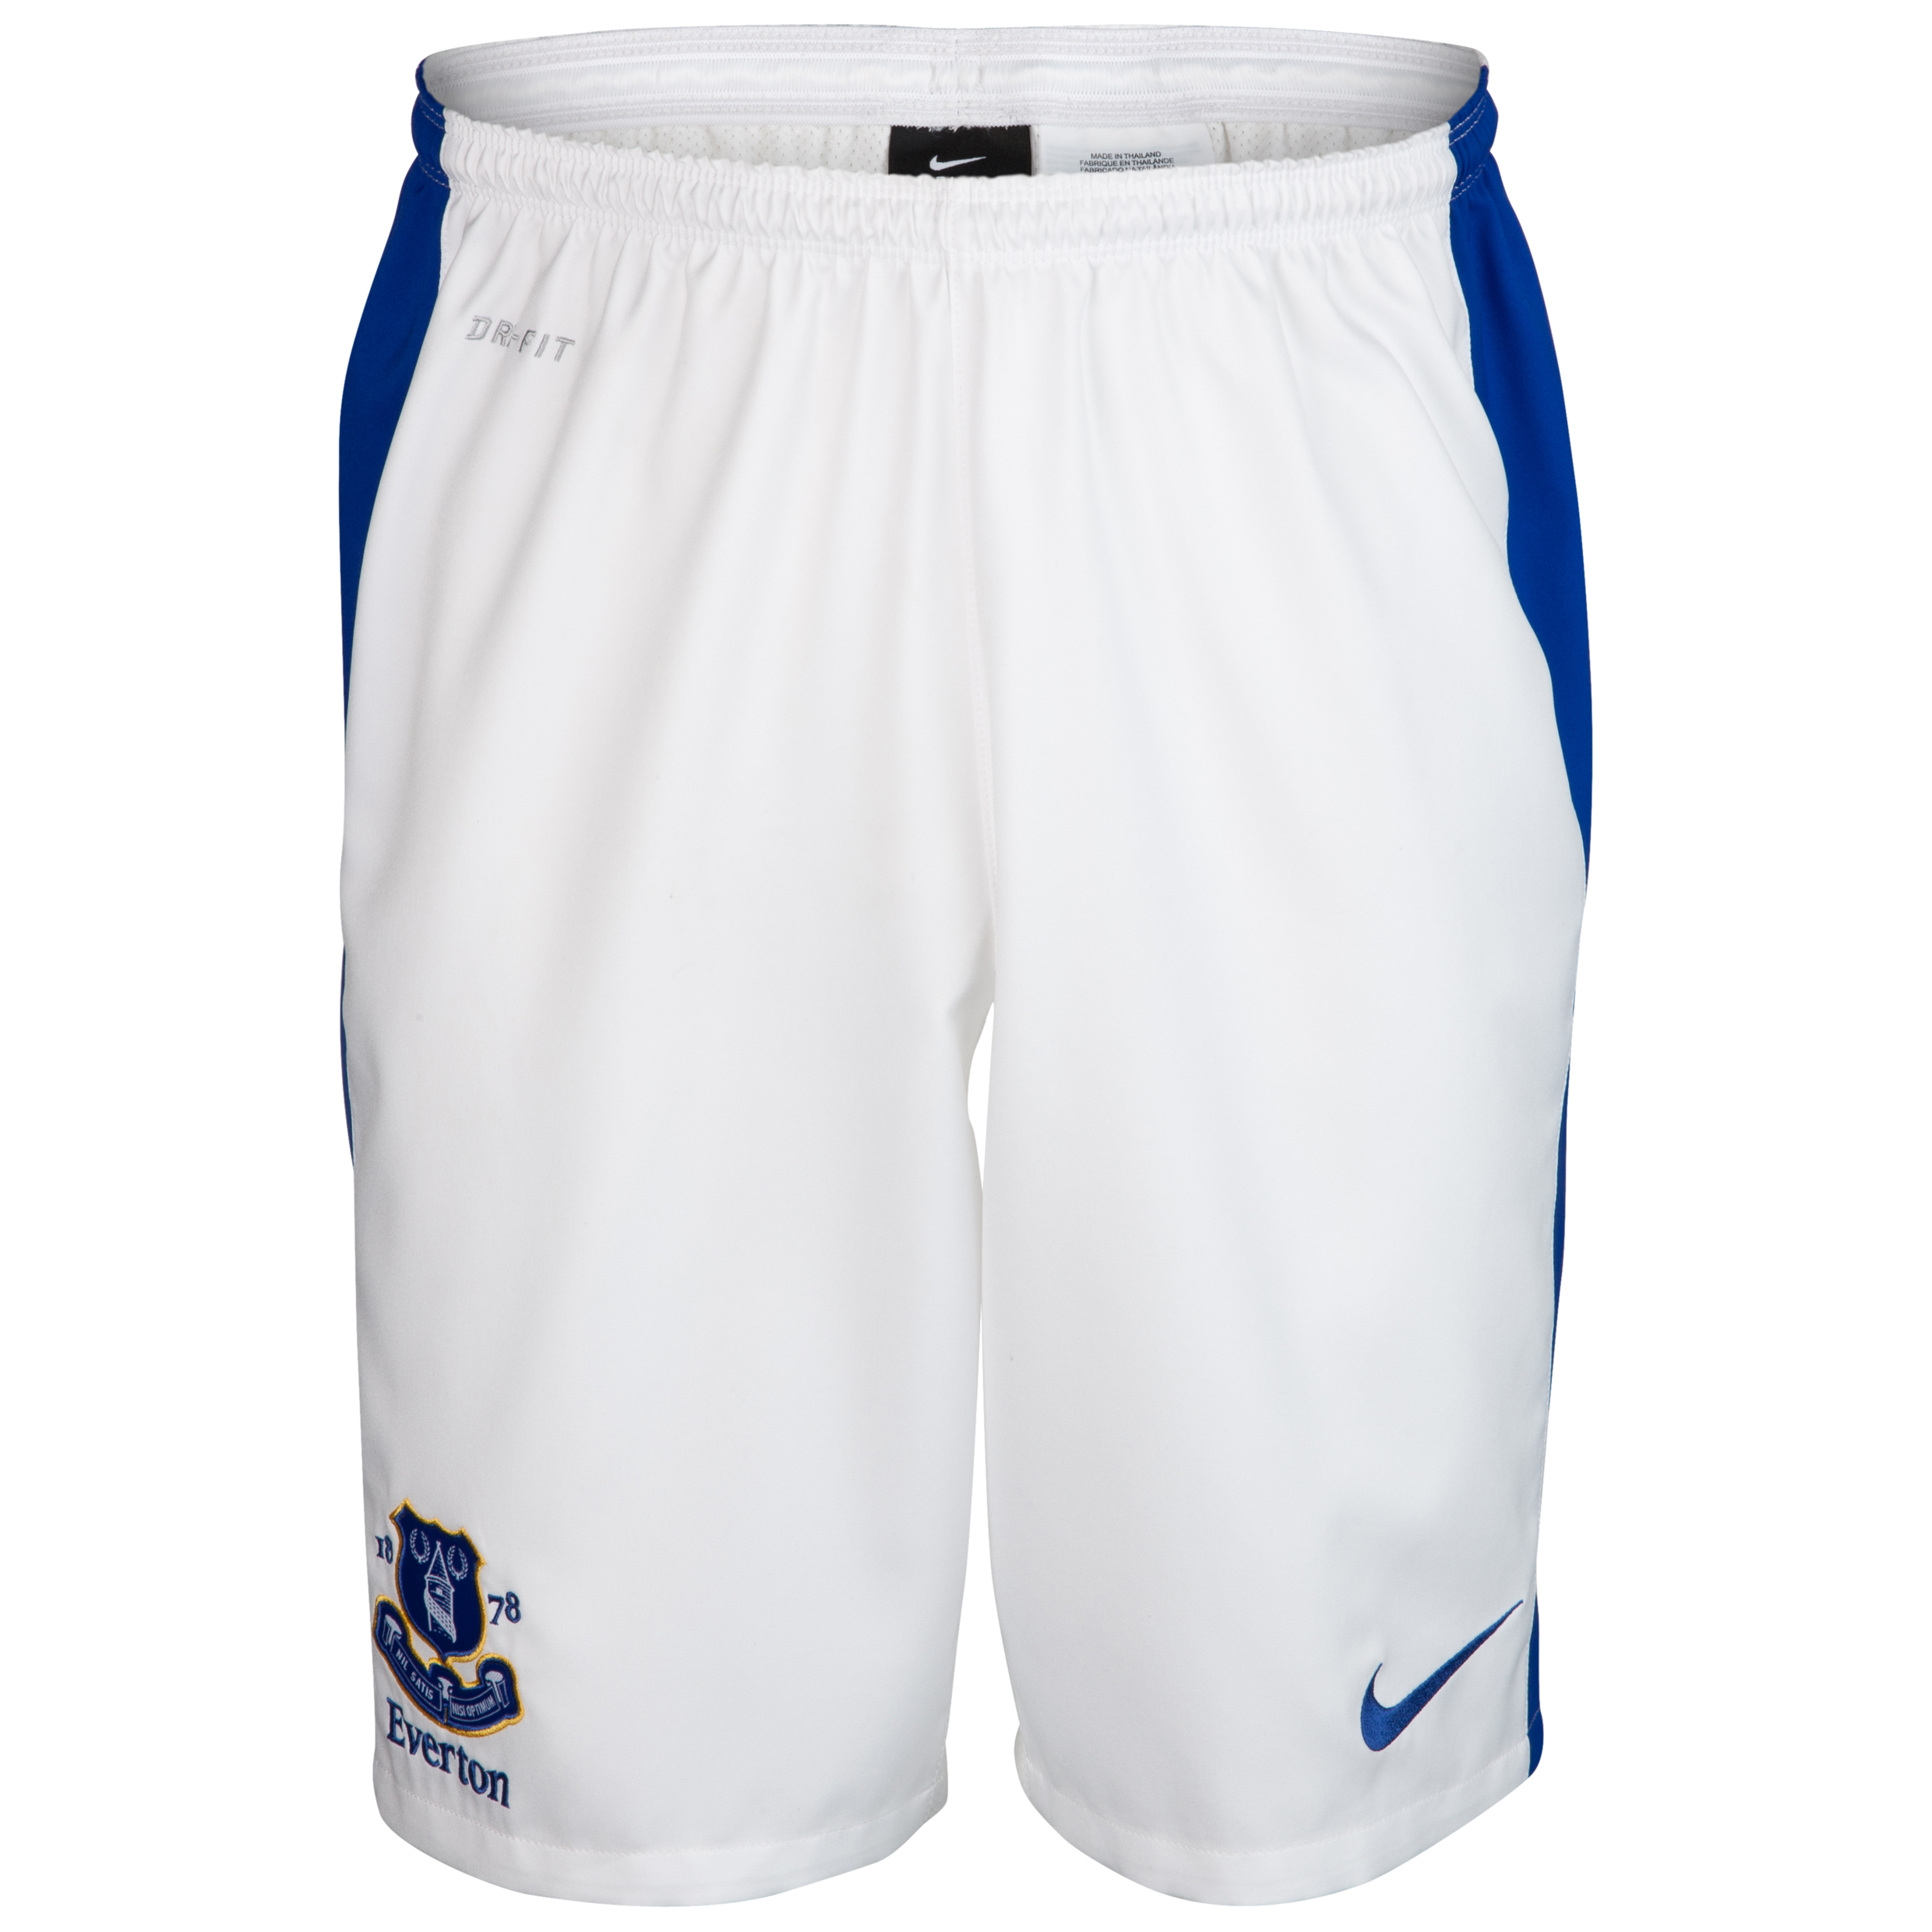 Everton Home Short 2012/13